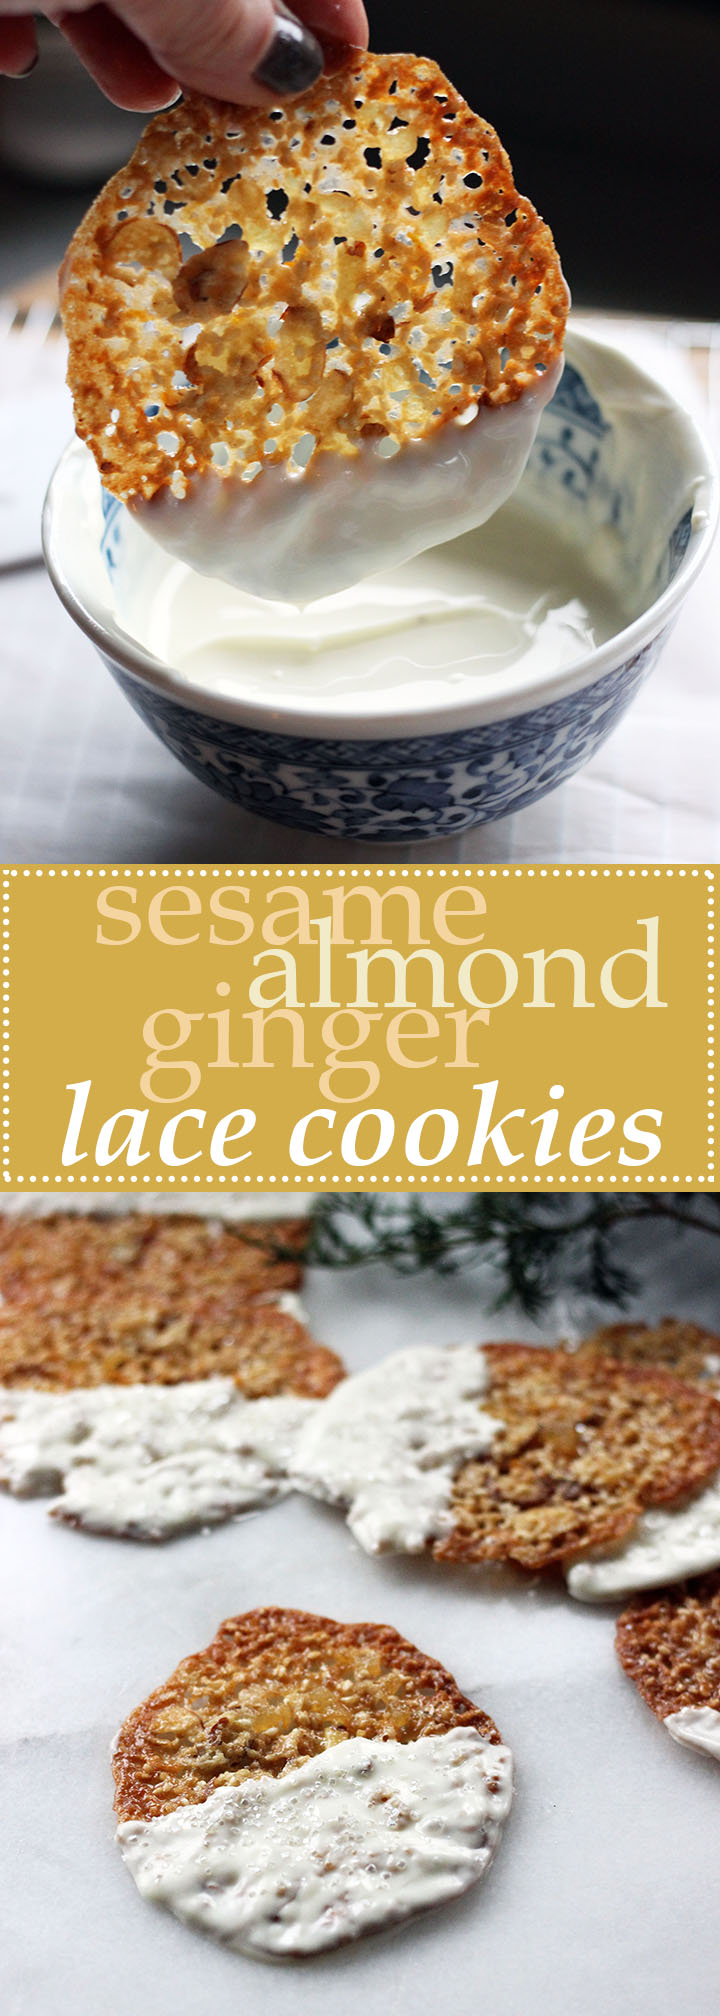 Sesame Almond Ginger Lace Cookies (GF)   www.thetableofcontents.co